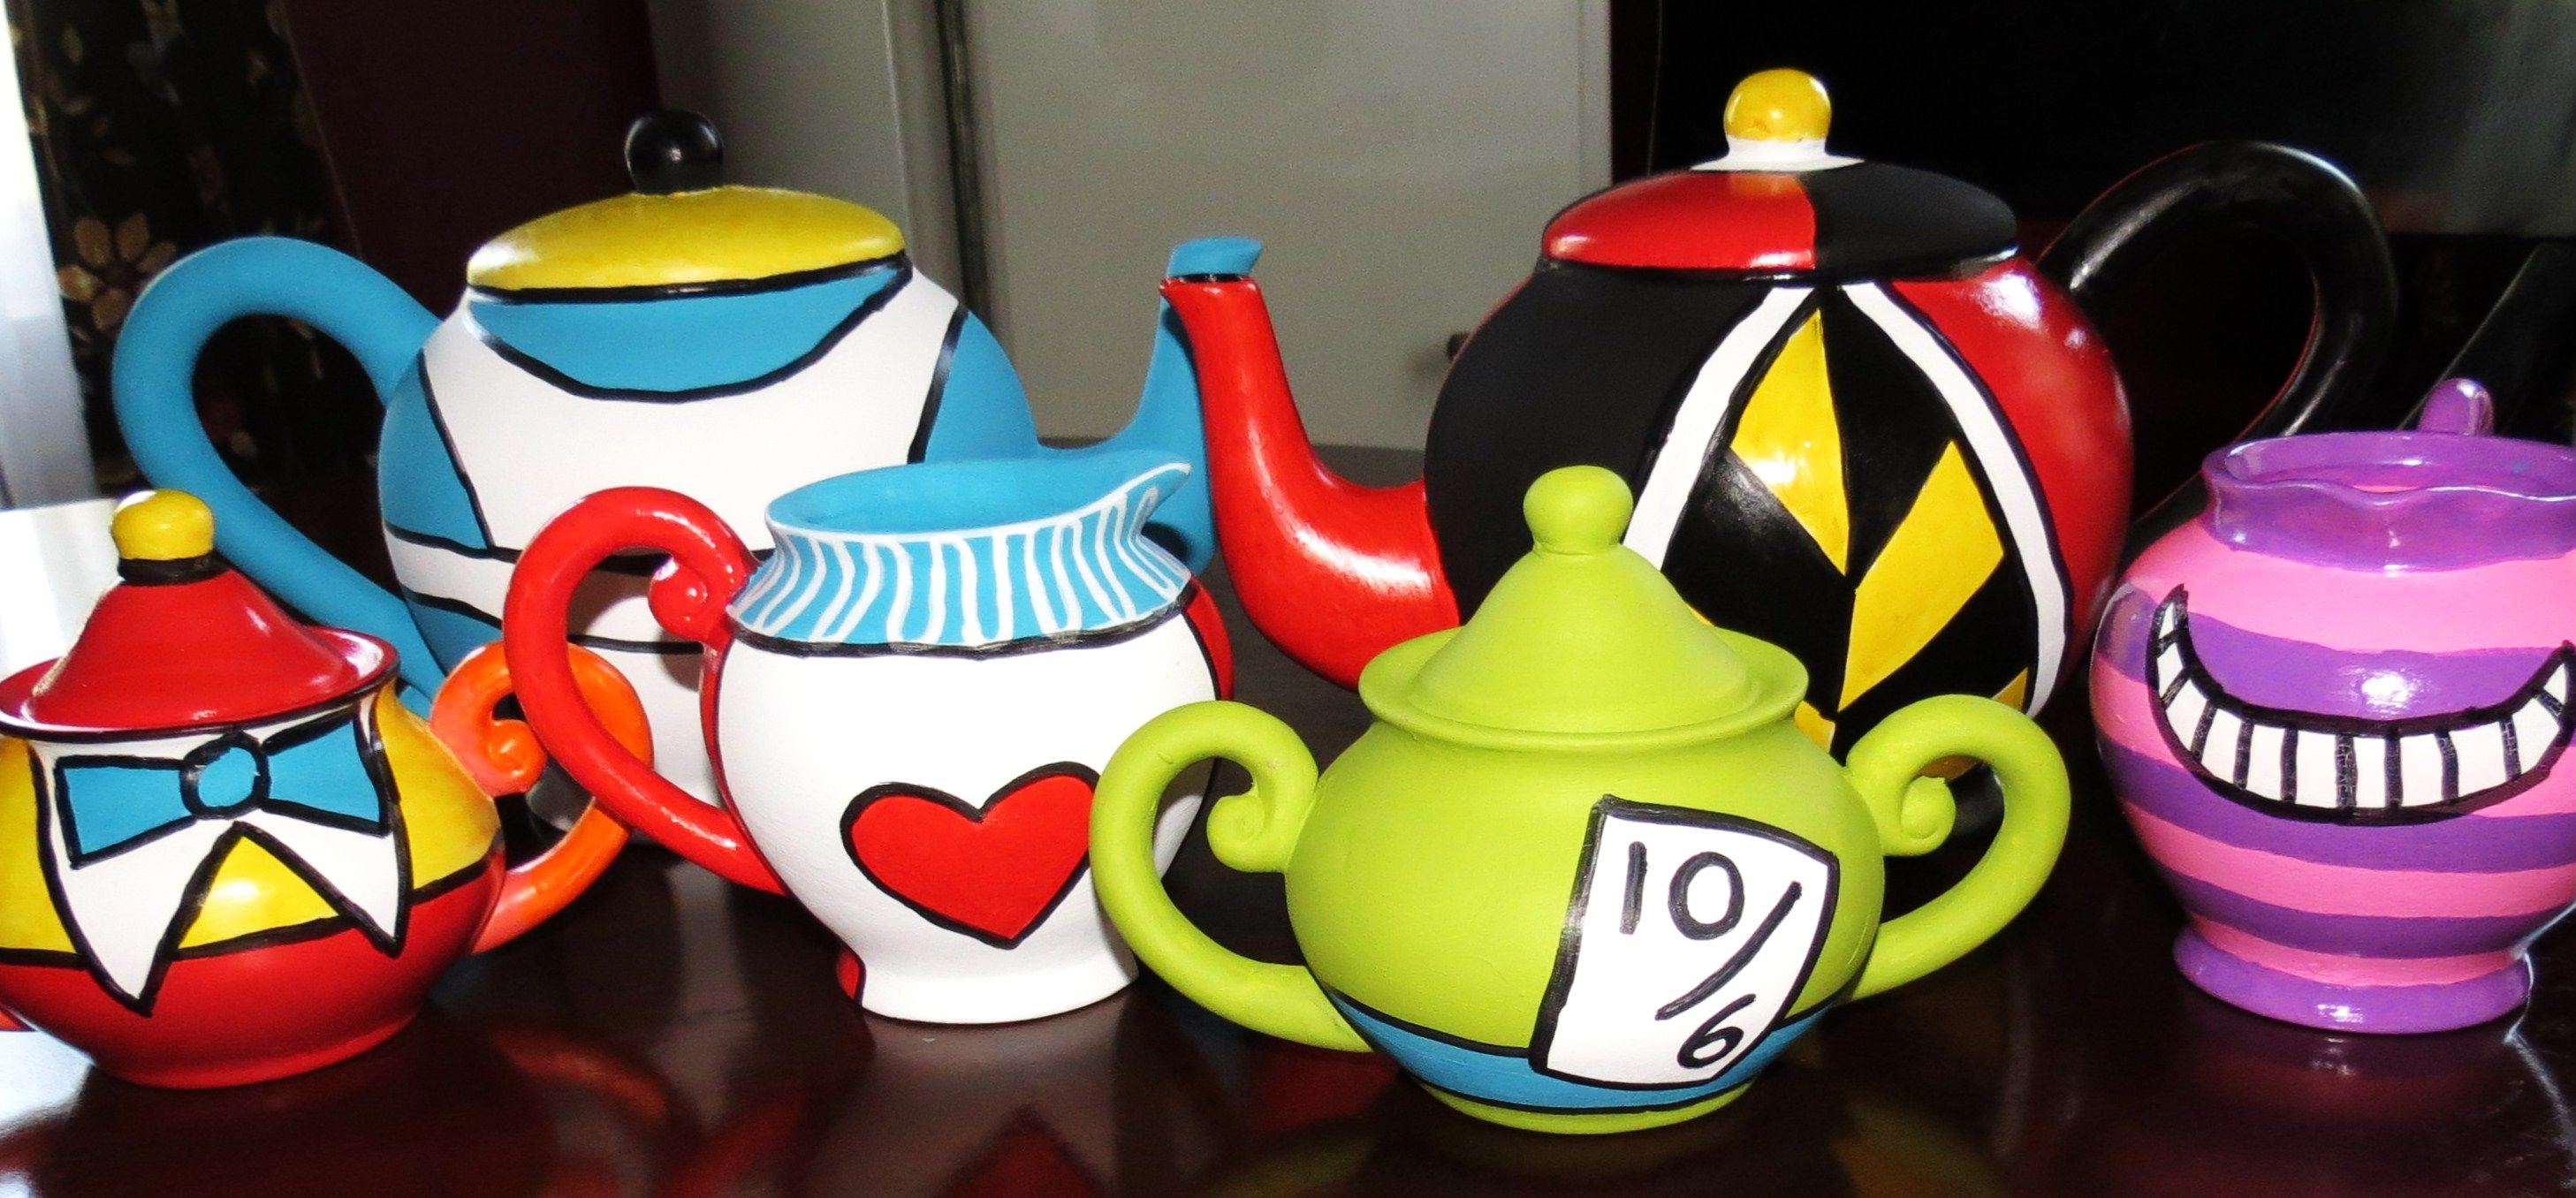 unfinished ceramic tea sets from michael 39 s painted like the characters for an alice in. Black Bedroom Furniture Sets. Home Design Ideas